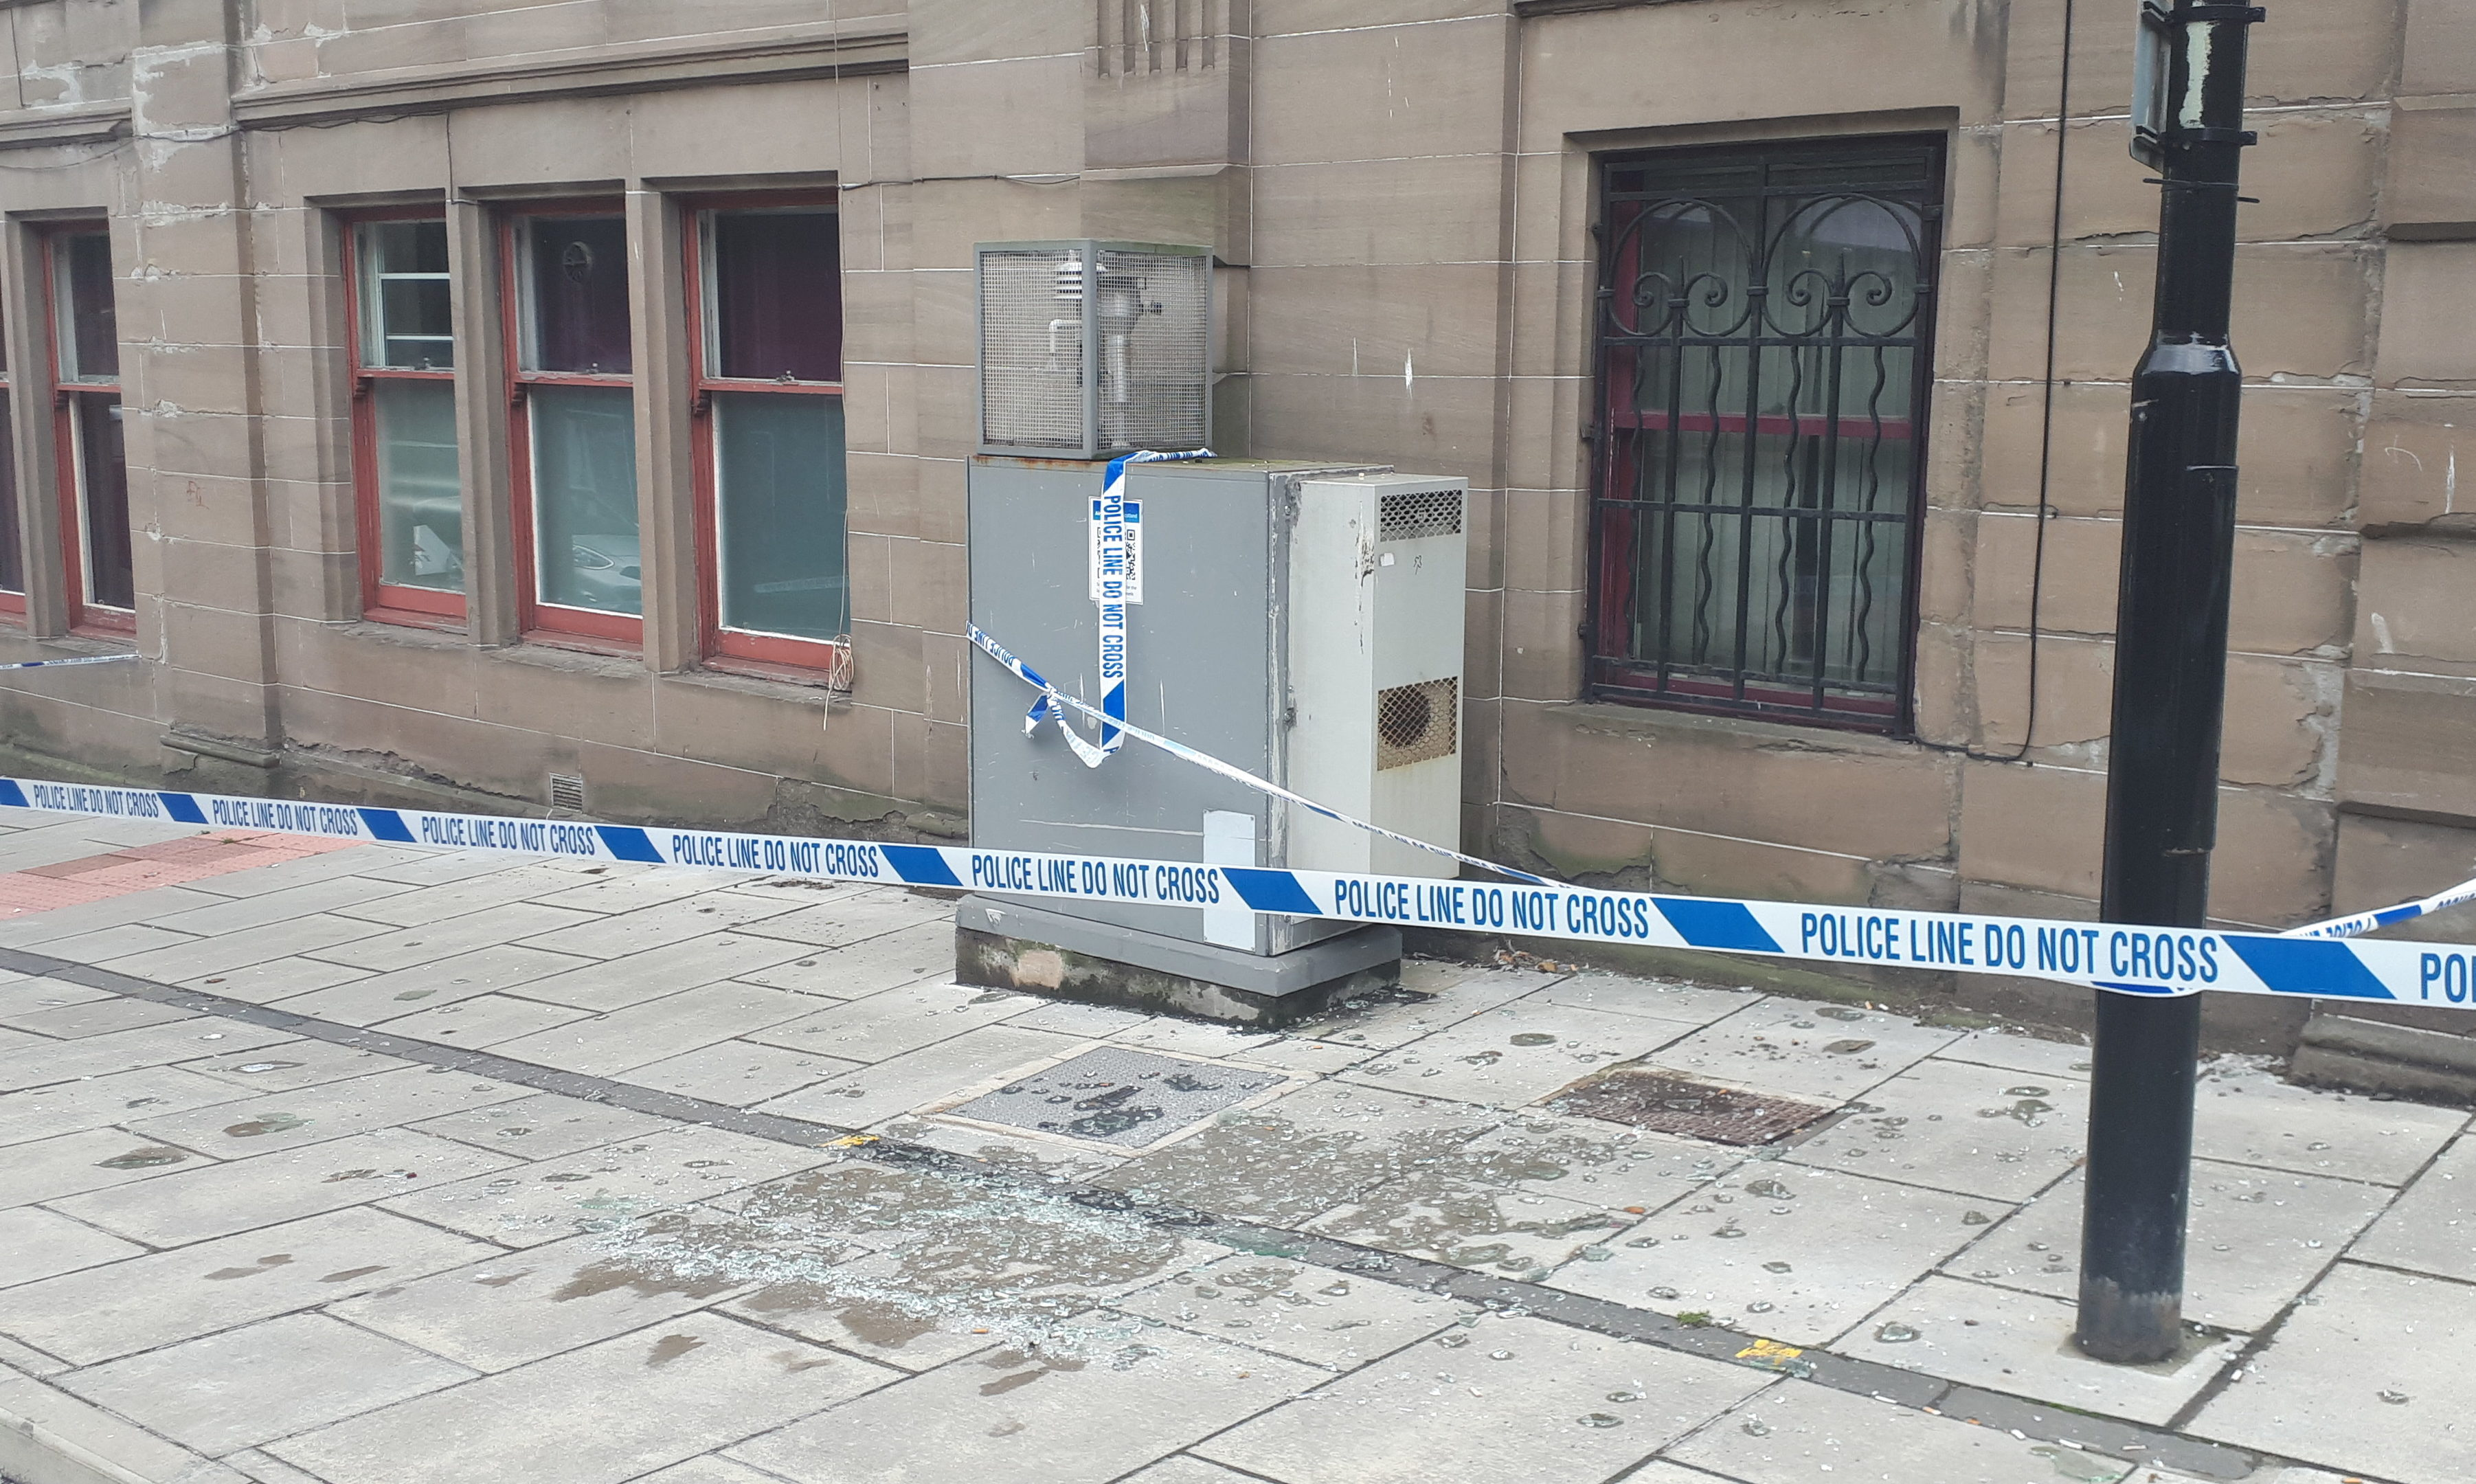 Large shards of glass fell onto Meadowside